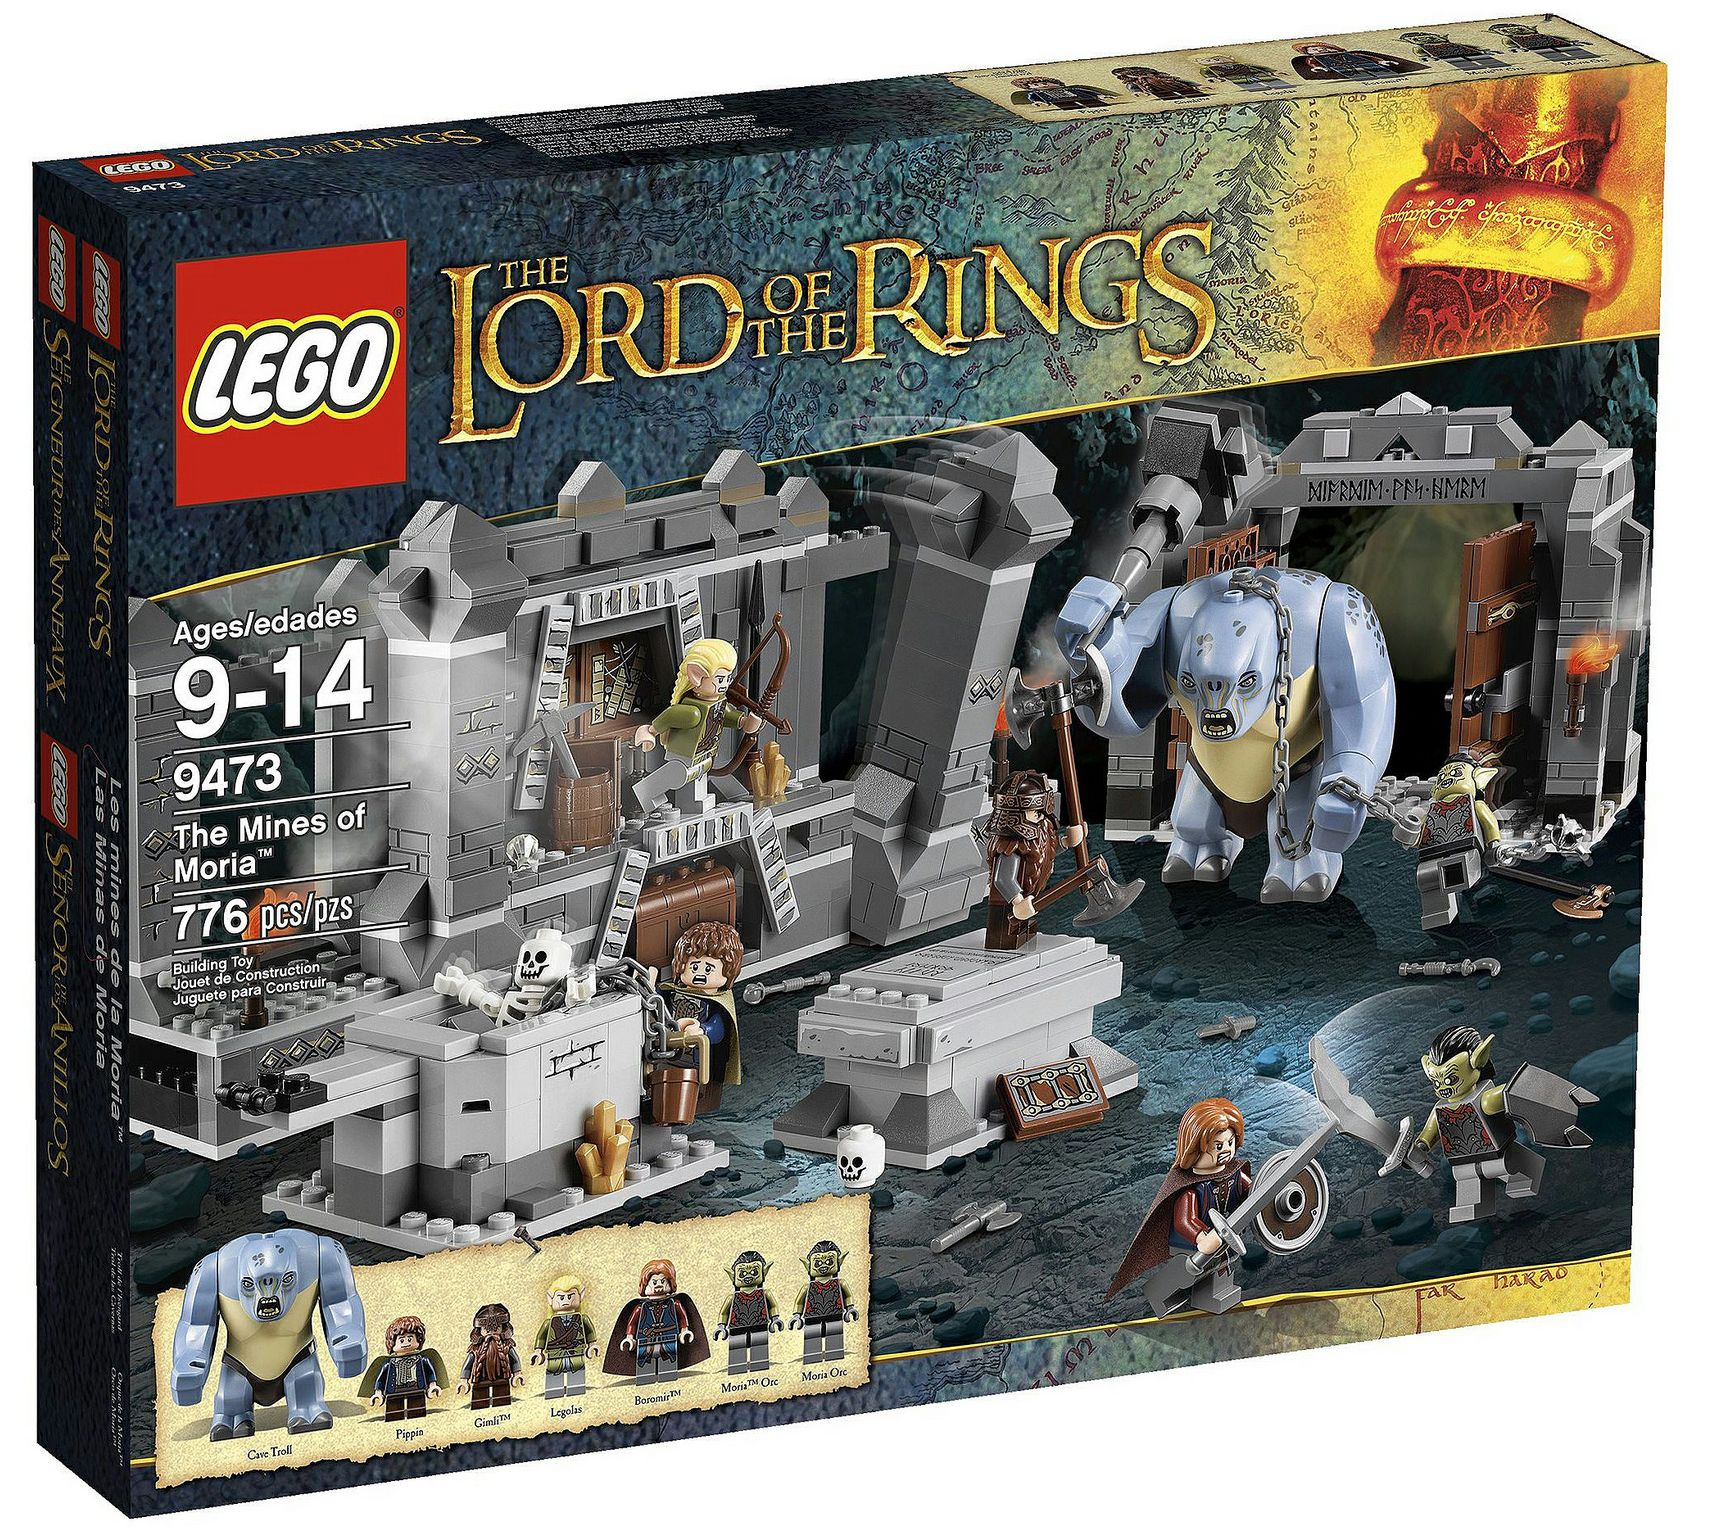 Lego 5001132 – The Lord of the Rings Collection | i Brick City